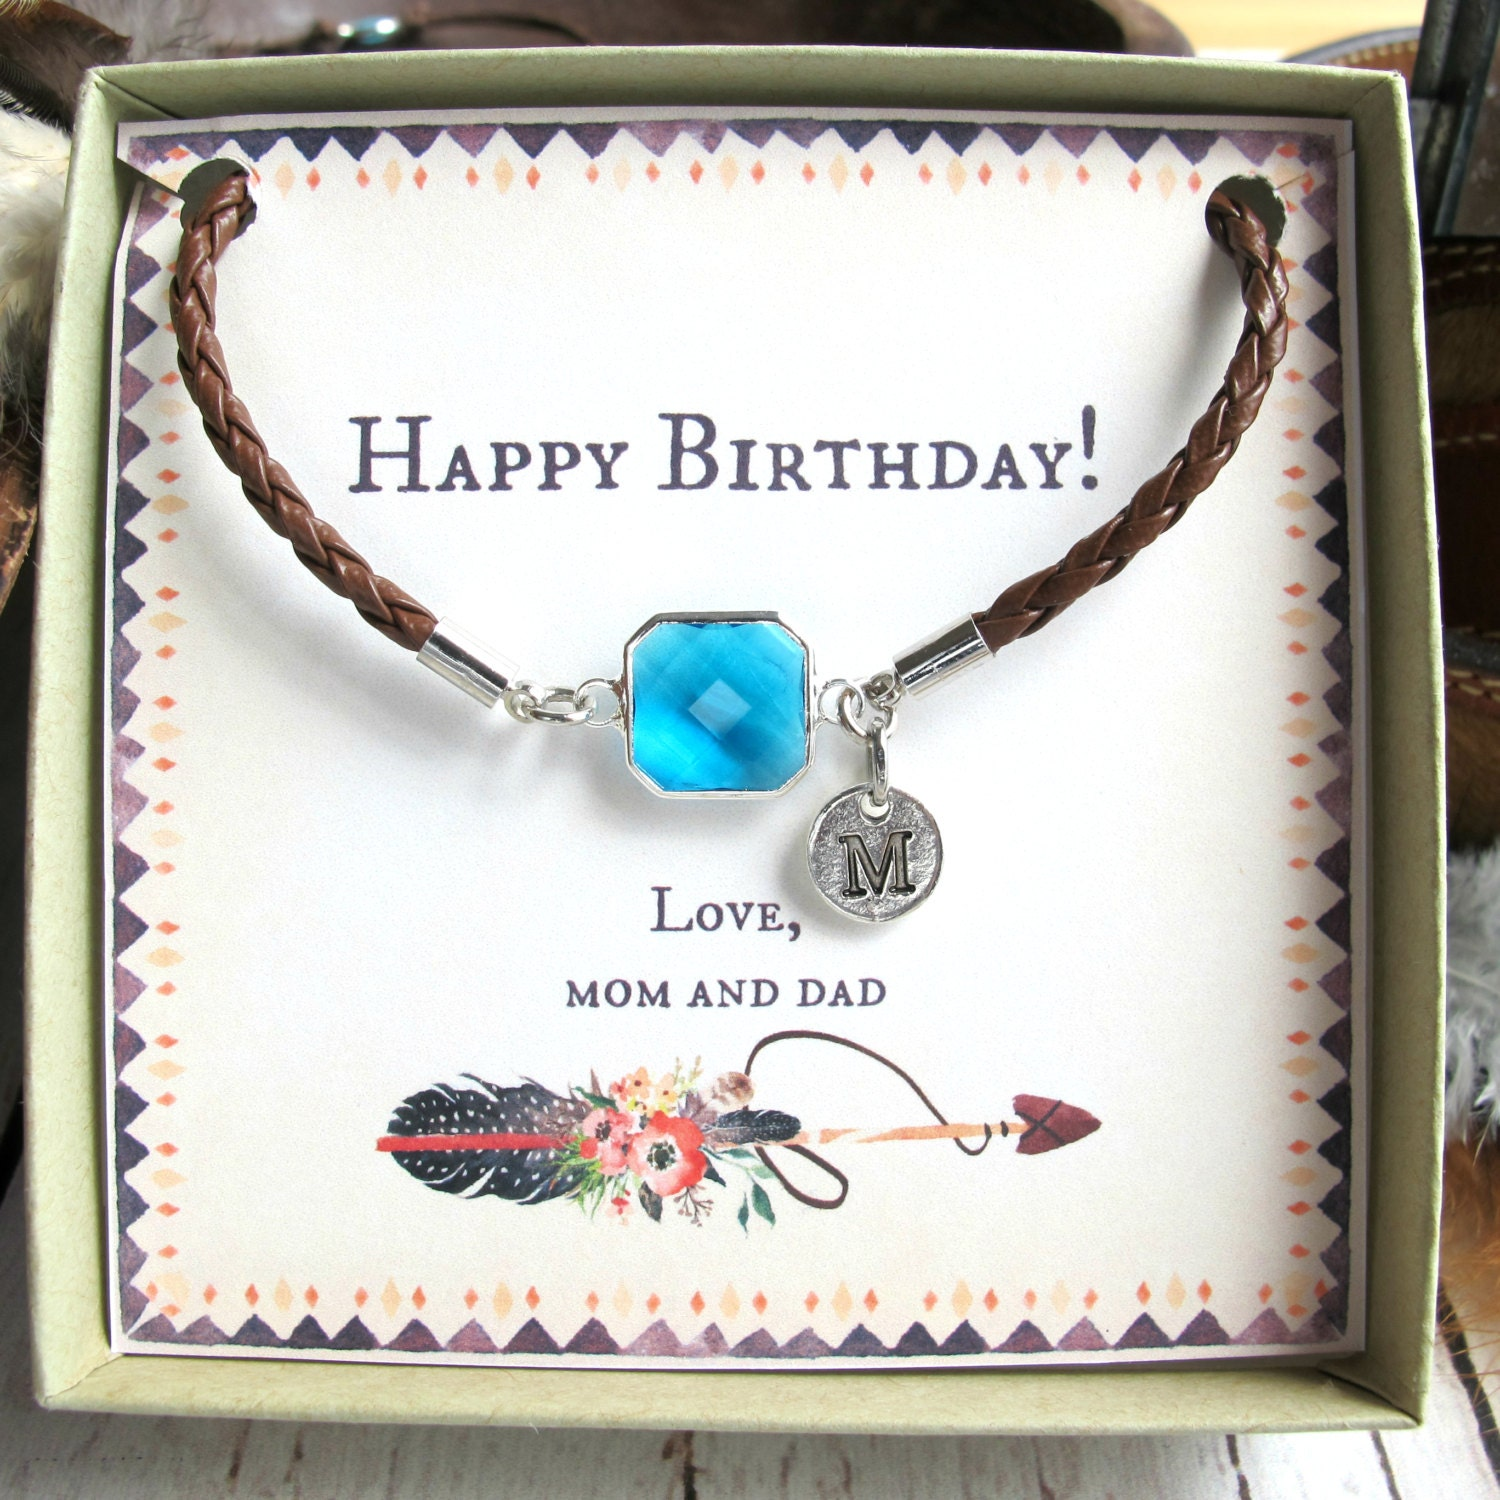 Personalized Birthday Gift For Girls And Women-Gifts For